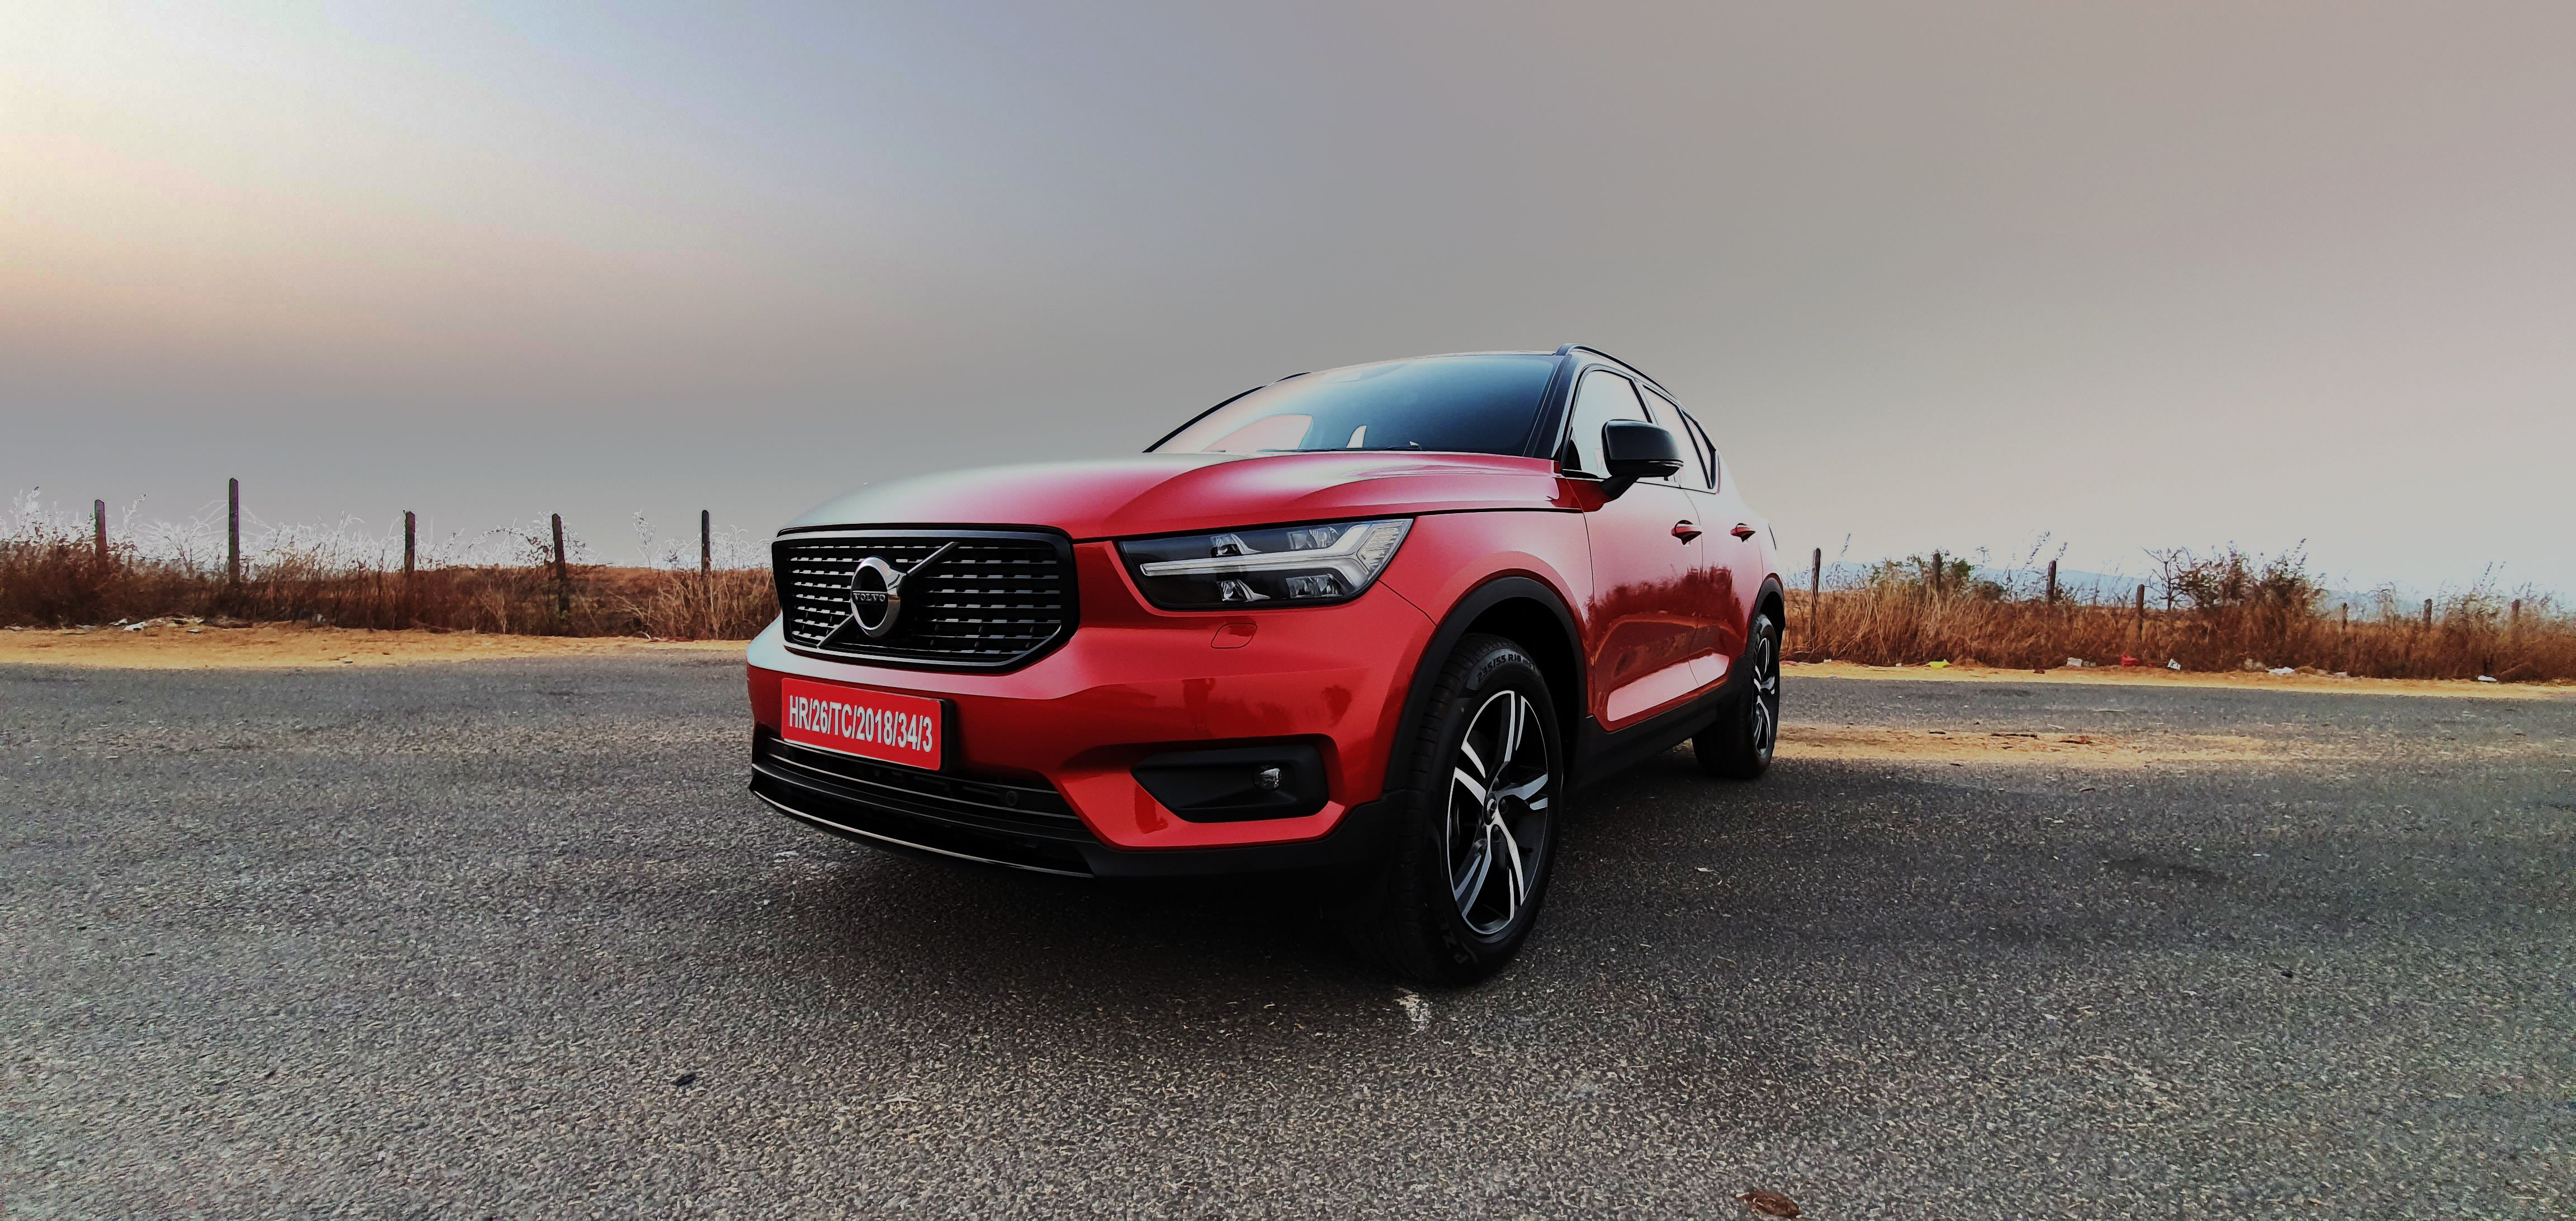 Volvo has driven in the petrol version of the XC 40 compact luxury SUV in India. The XC 40 T4 R-Design looks similar to its diesel sibling - barring subtle changes and a 2.0 litre turbo petrol engine. (HT Auto photo)